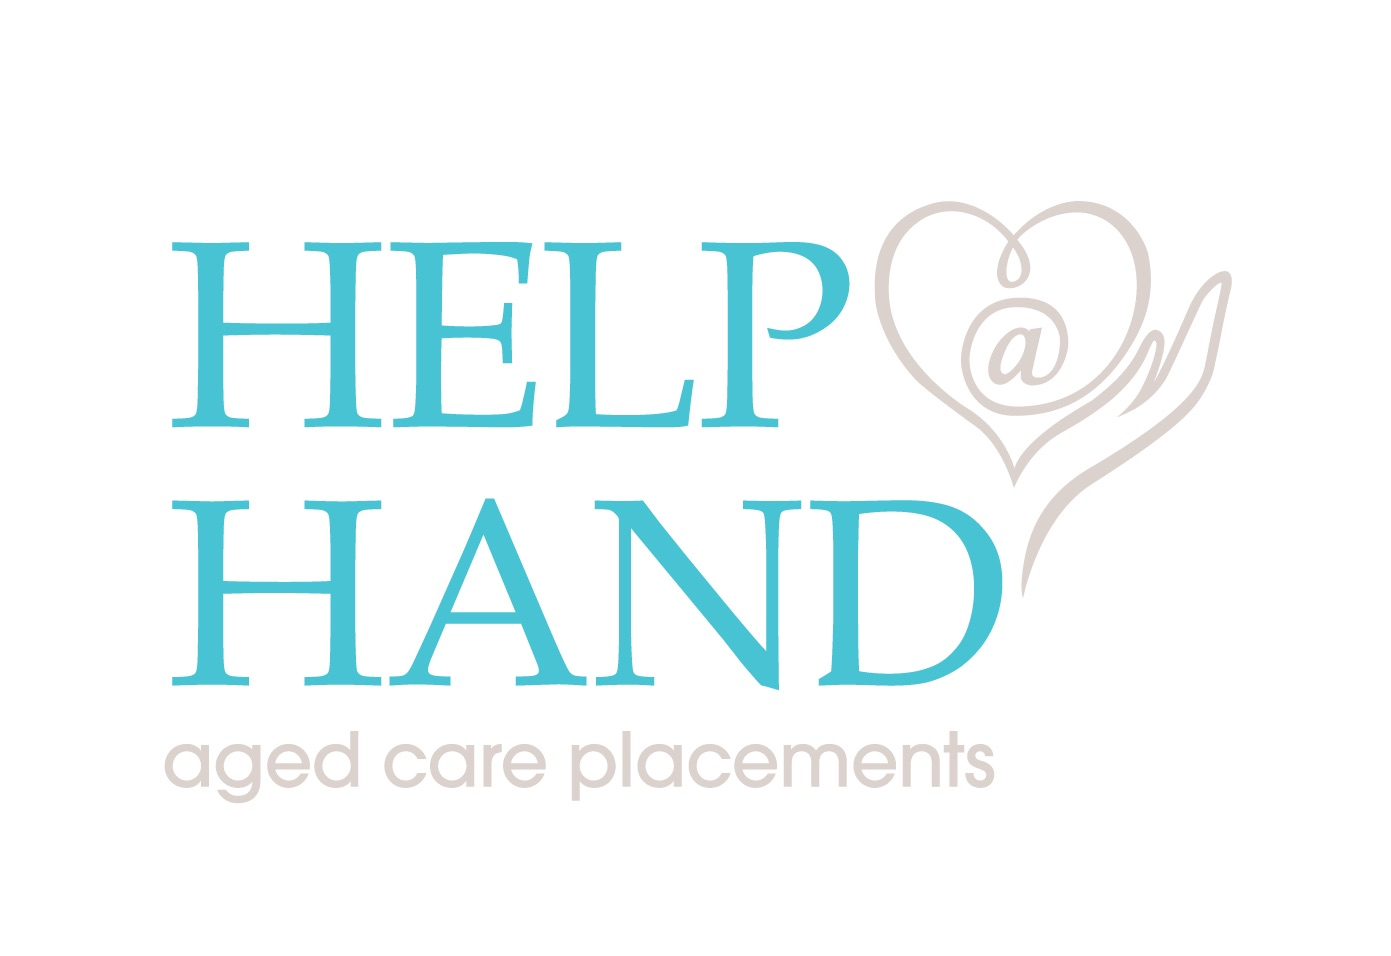 Help@Hand Aged Care Placements